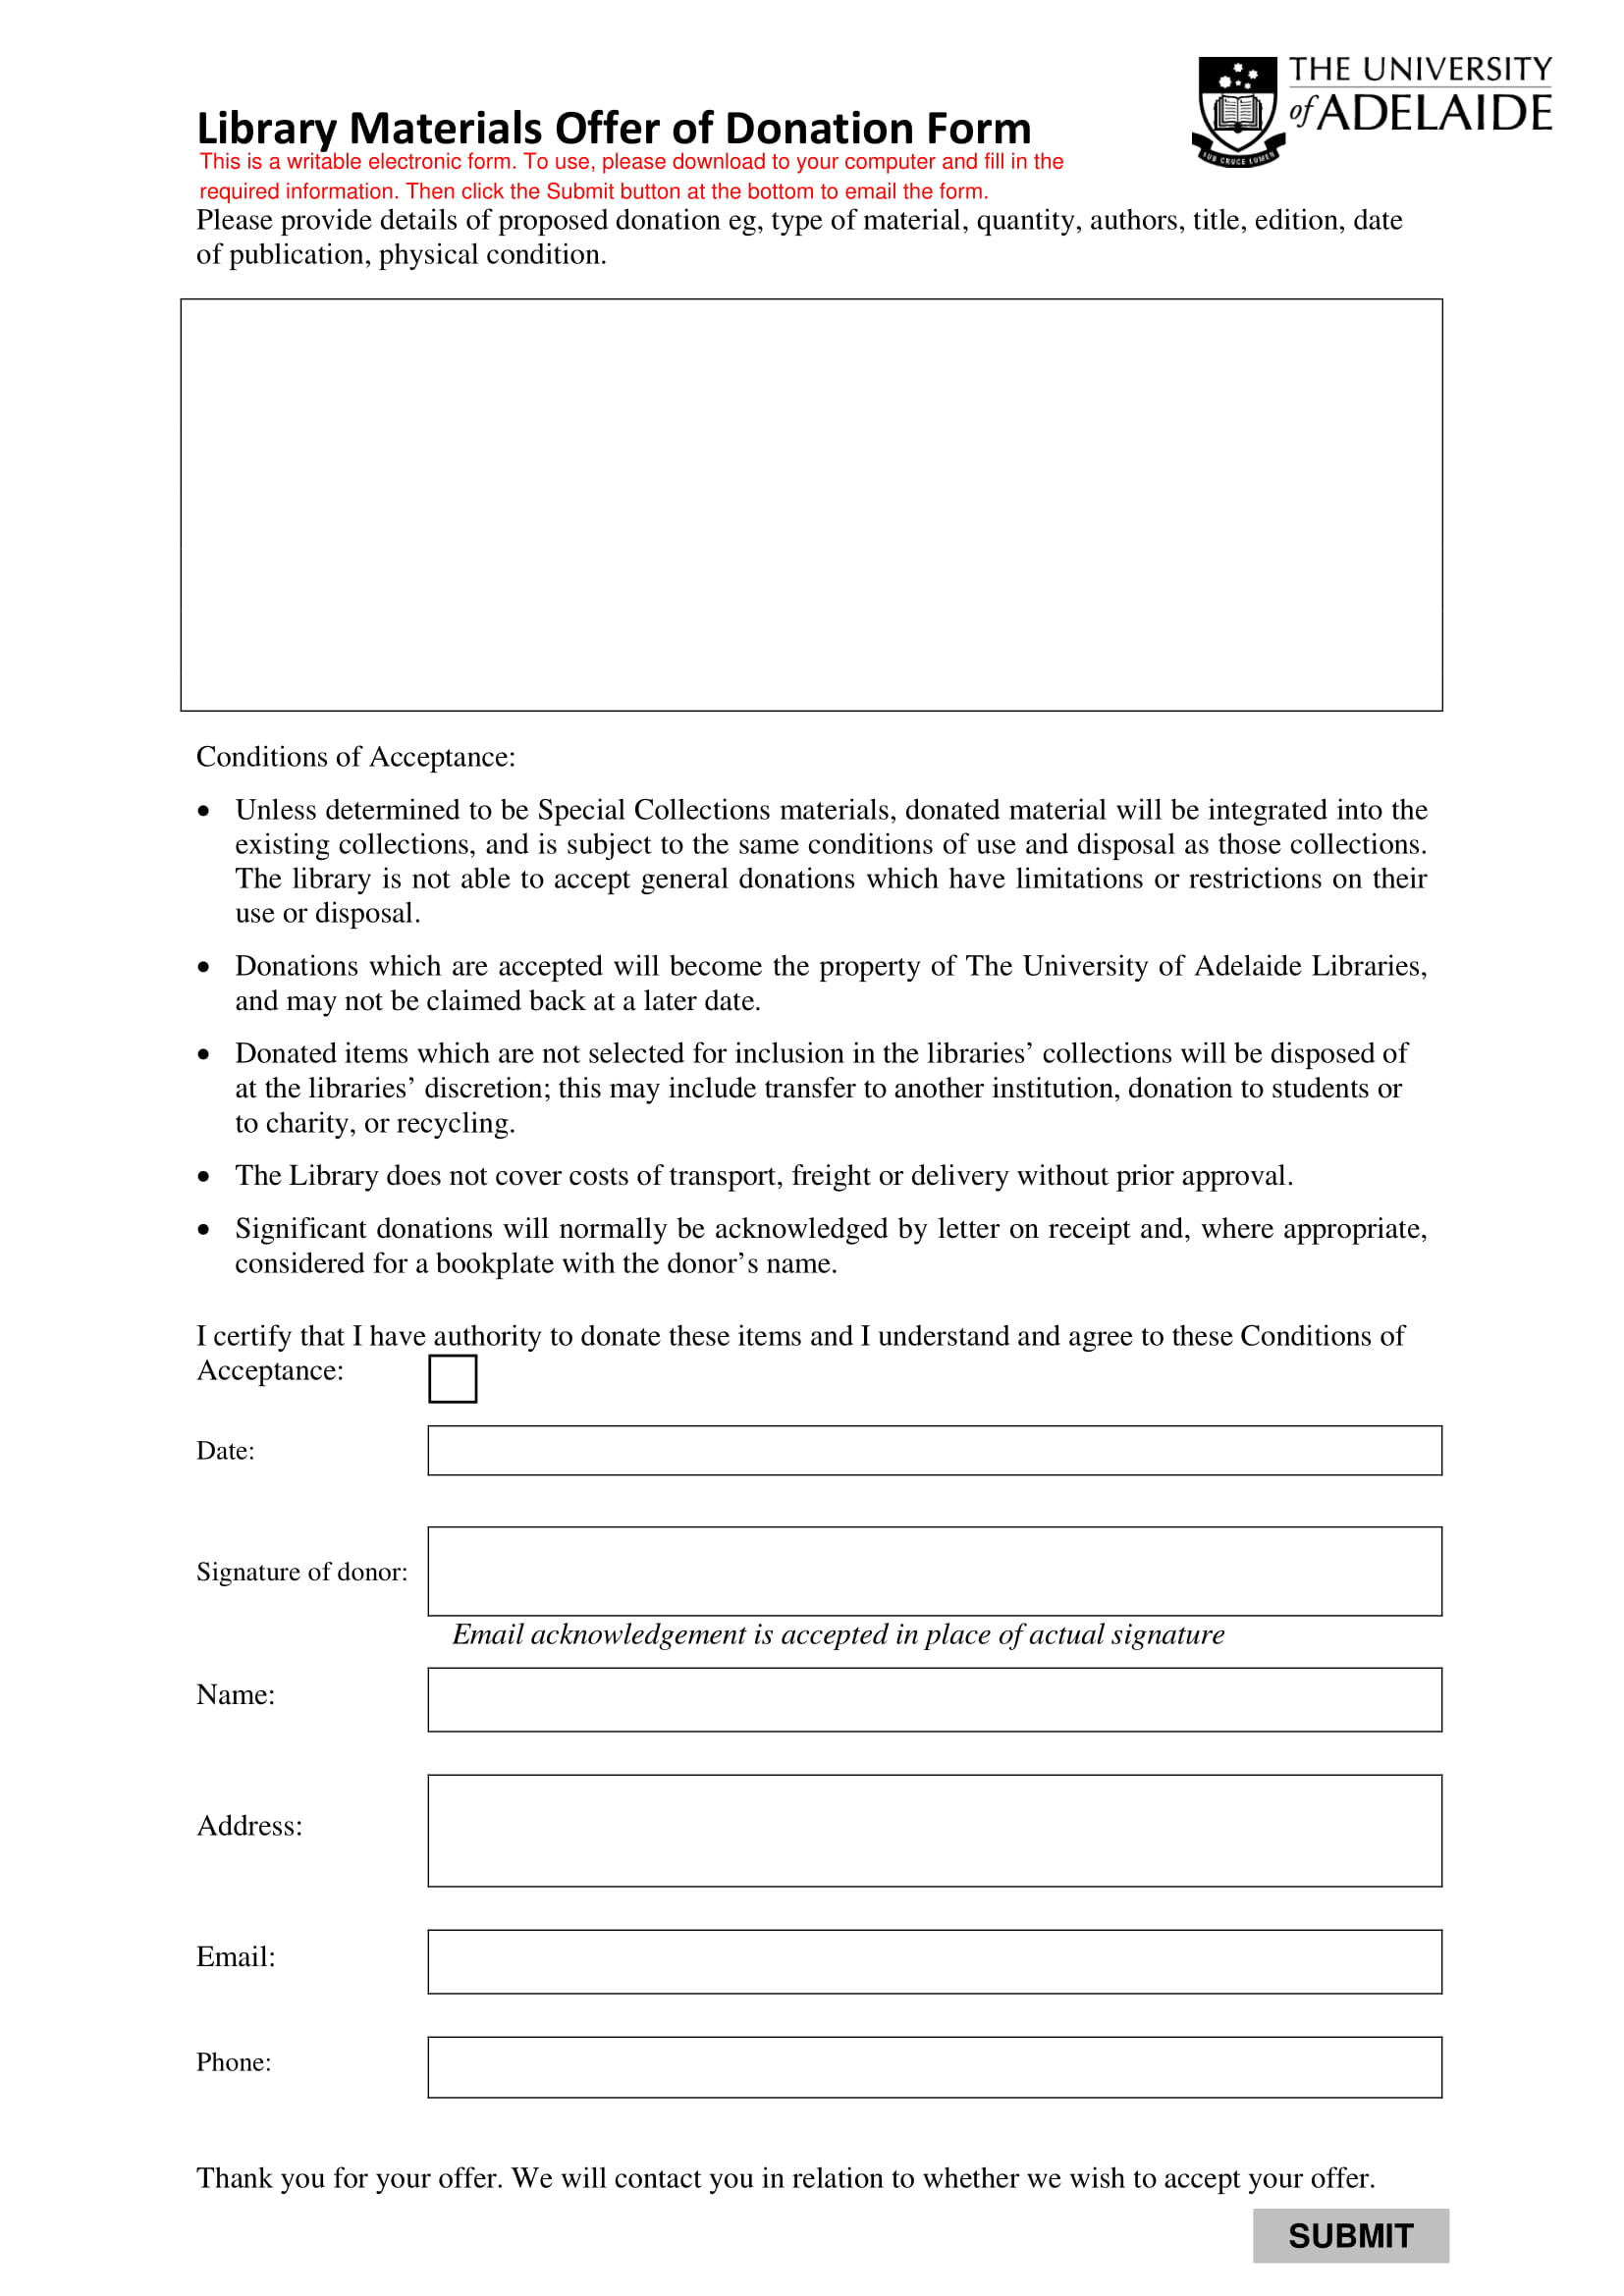 library materials donation form 1